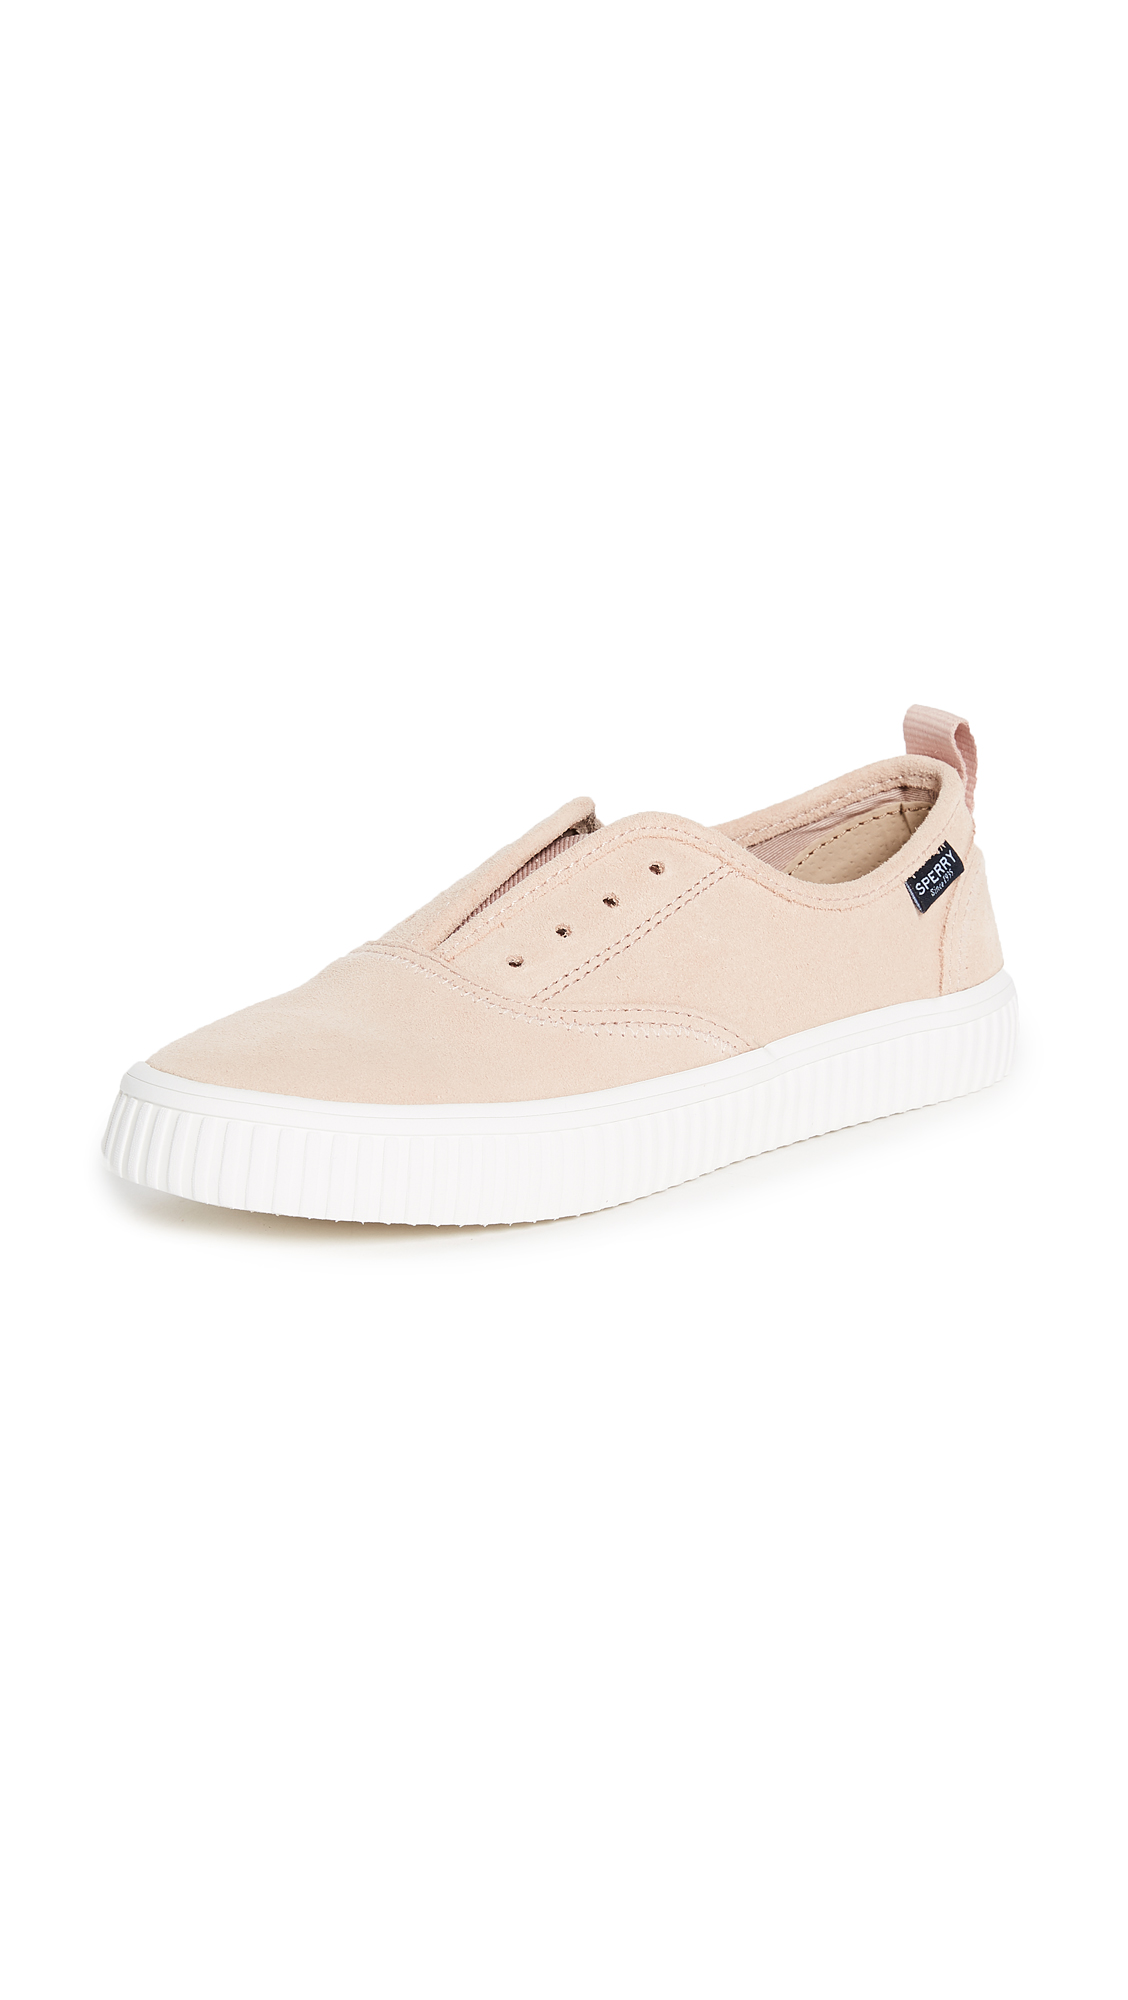 Sperry Crest Creeper Sneakers - Pink